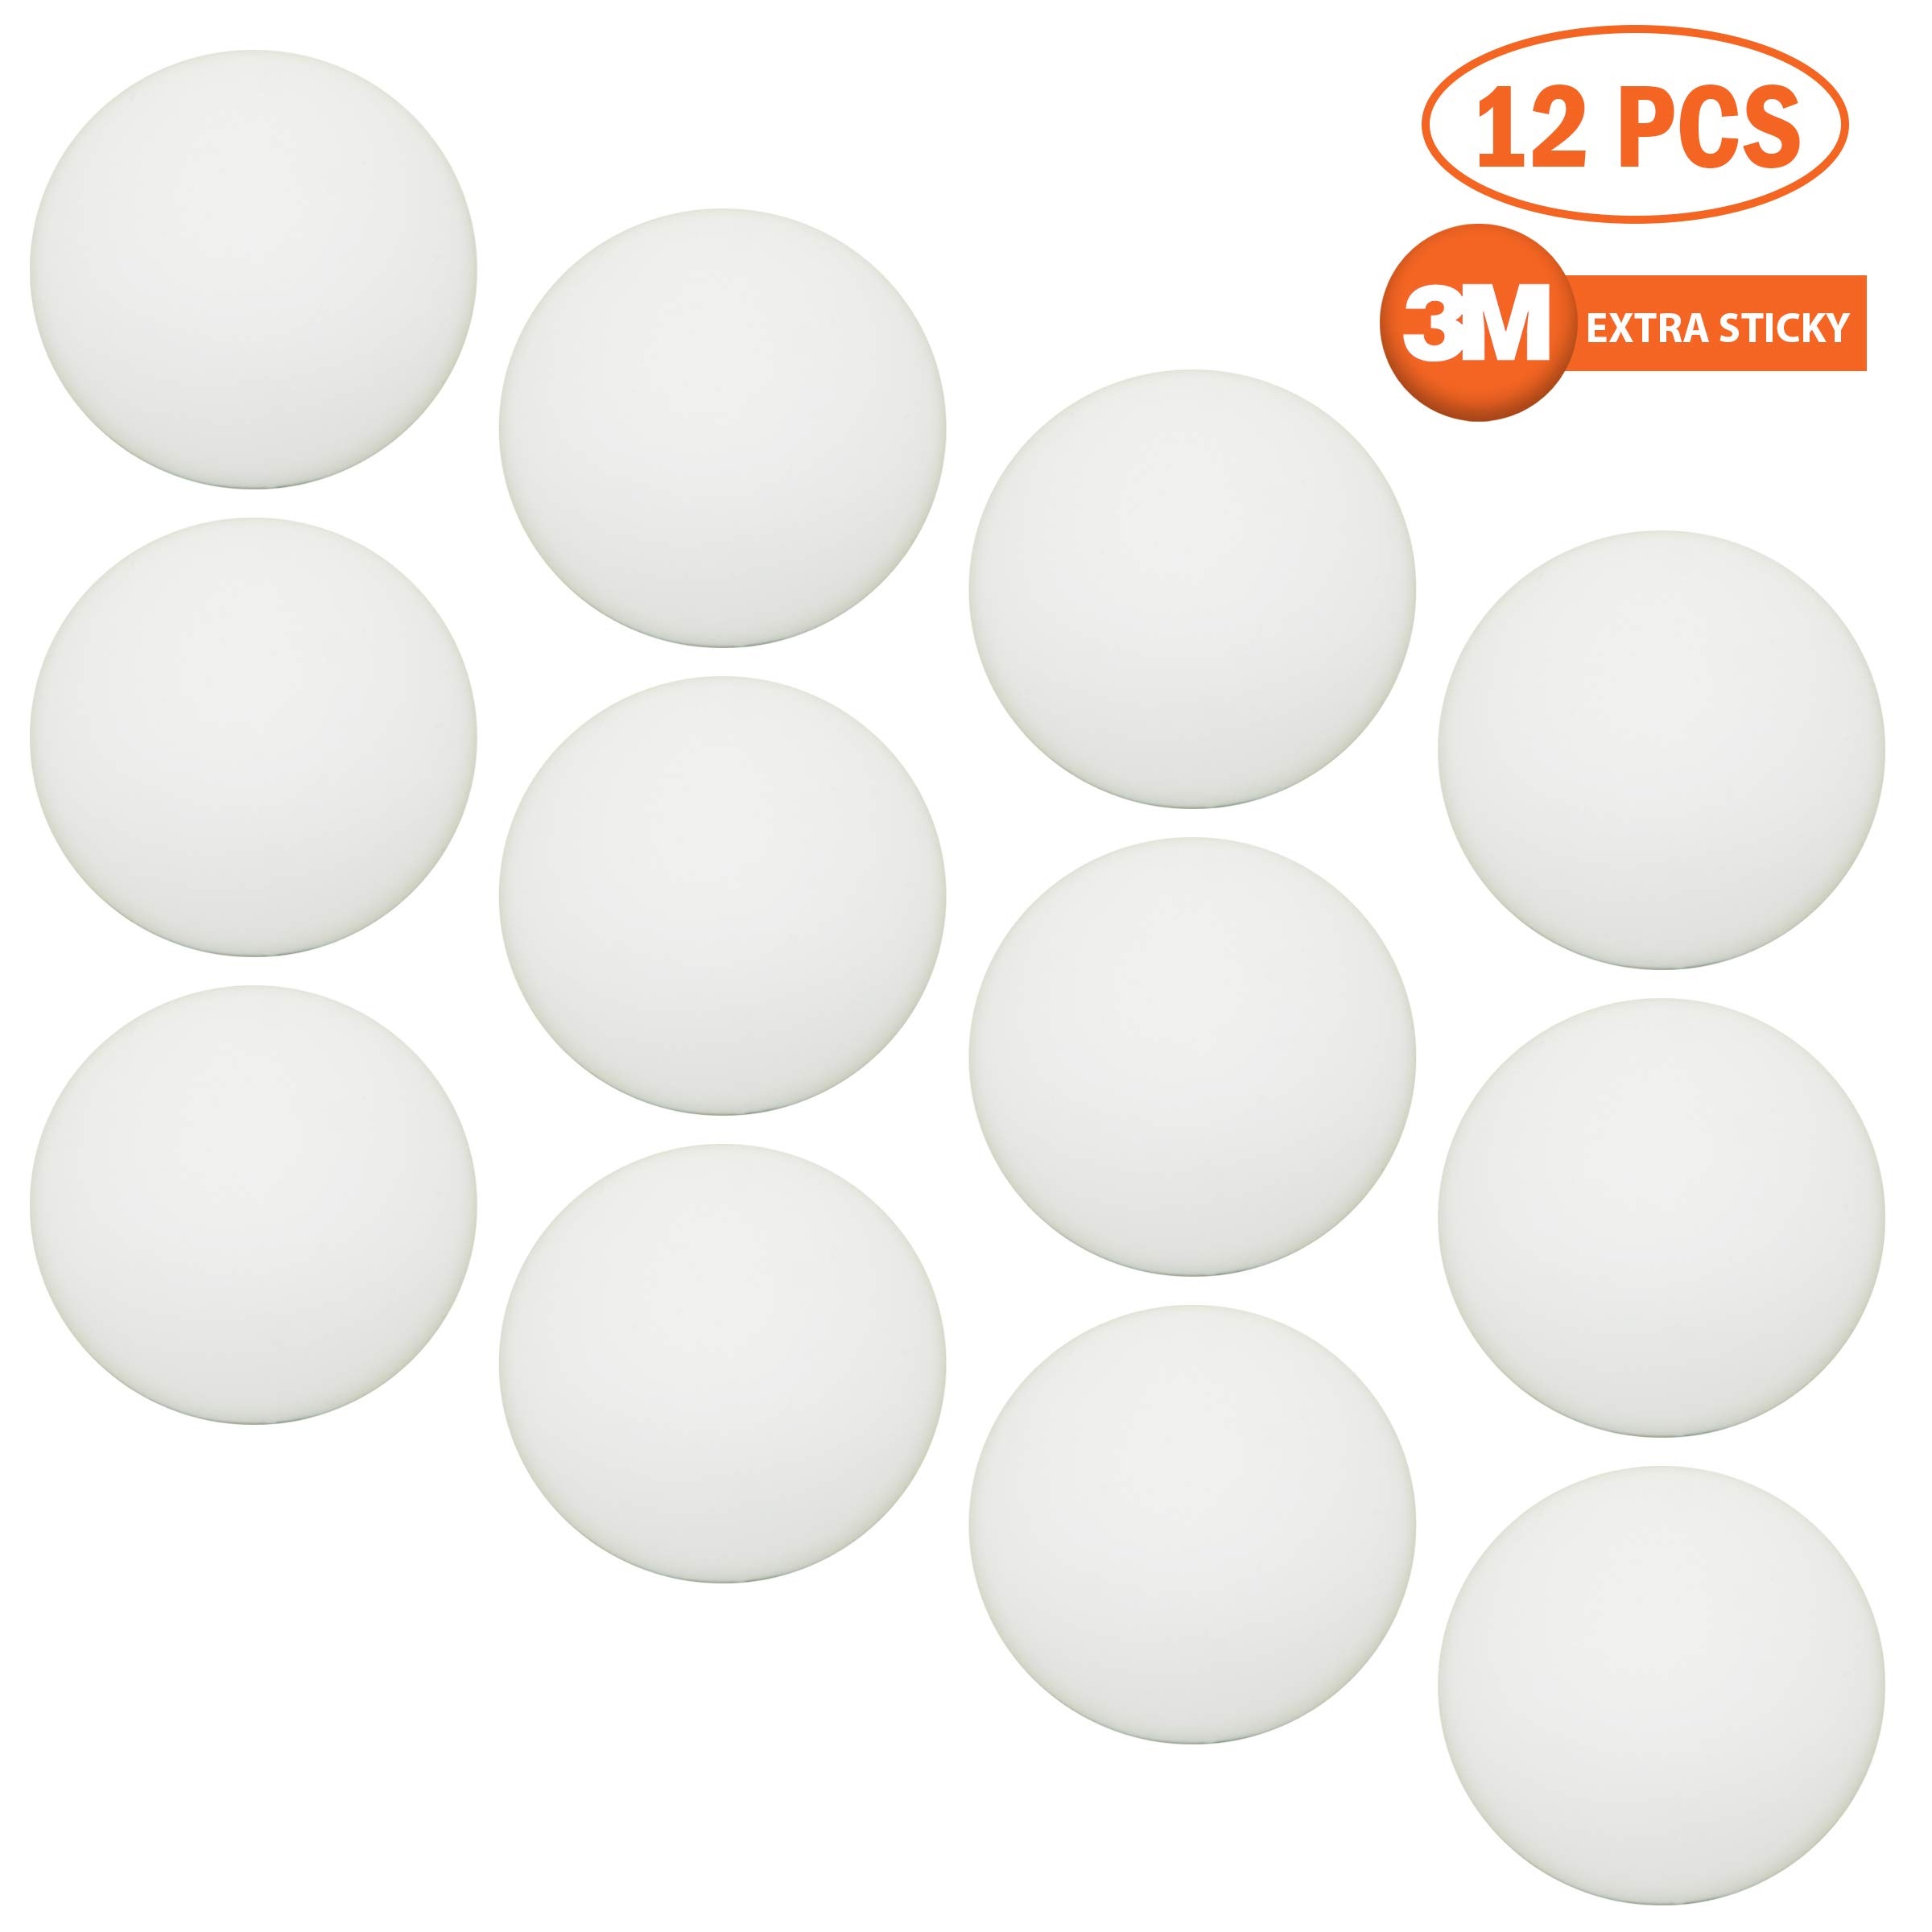 12 Pack Door Bumper for Protecting Wall 3M Self-Adhesive Sticker Silicone Wall Guard Doorknob Wall Shield Door Stopper Wall